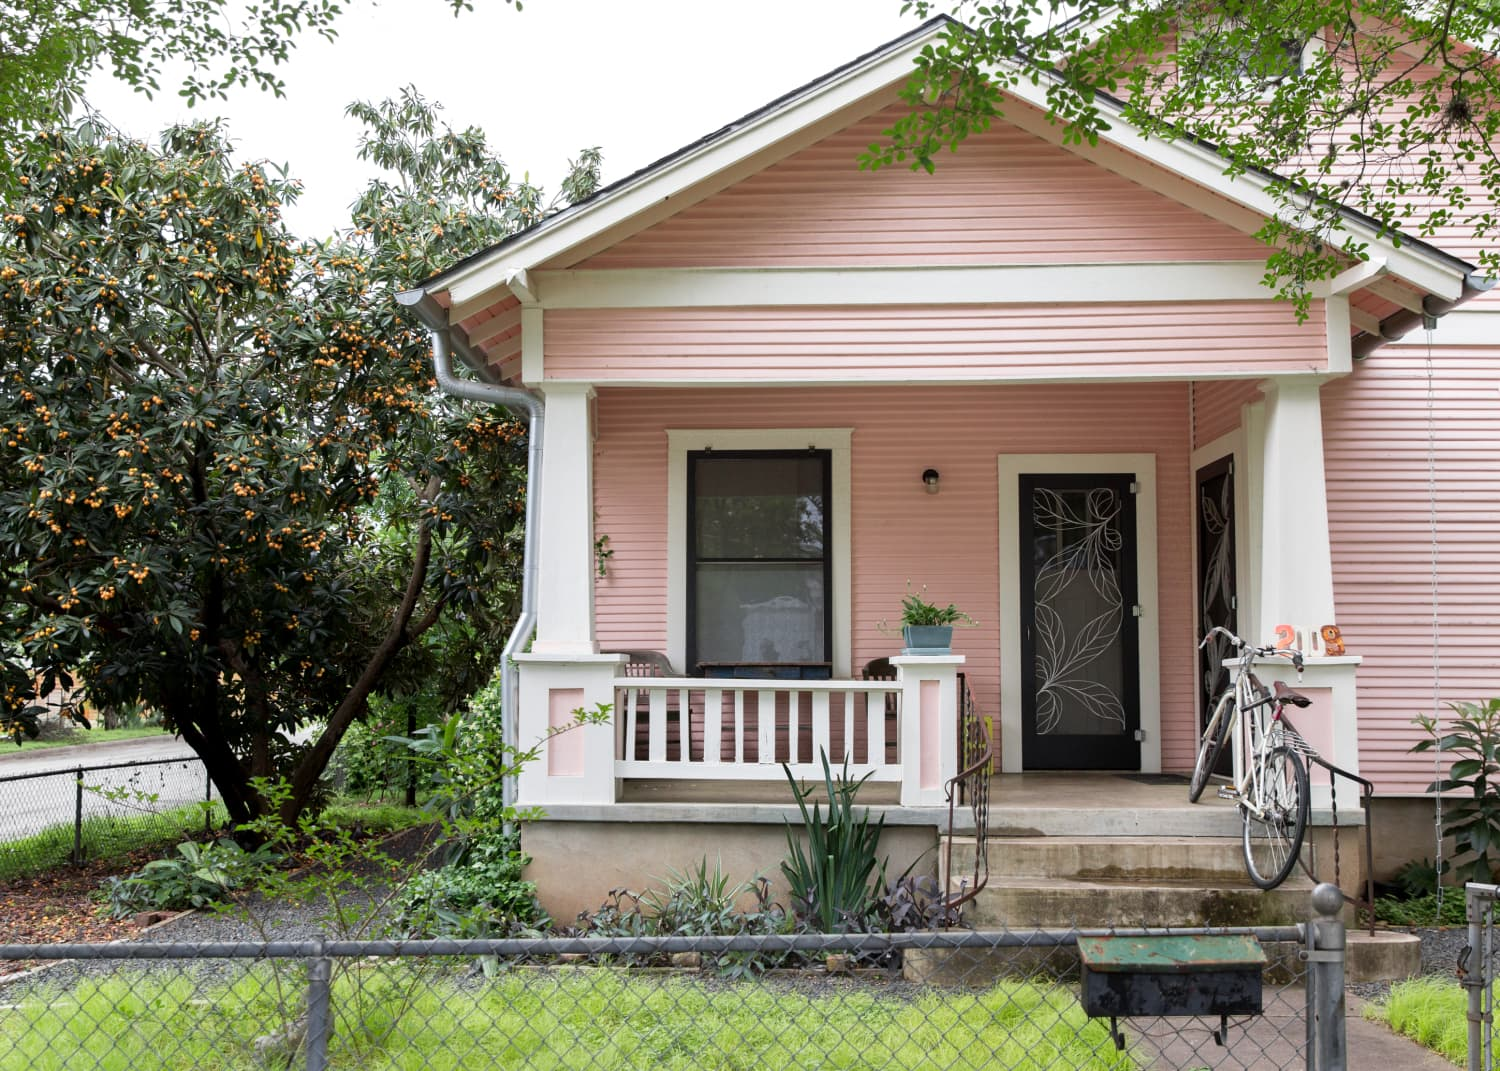 See Inside This Pretty Pink Austin Bungalow That Was DIY Renovated